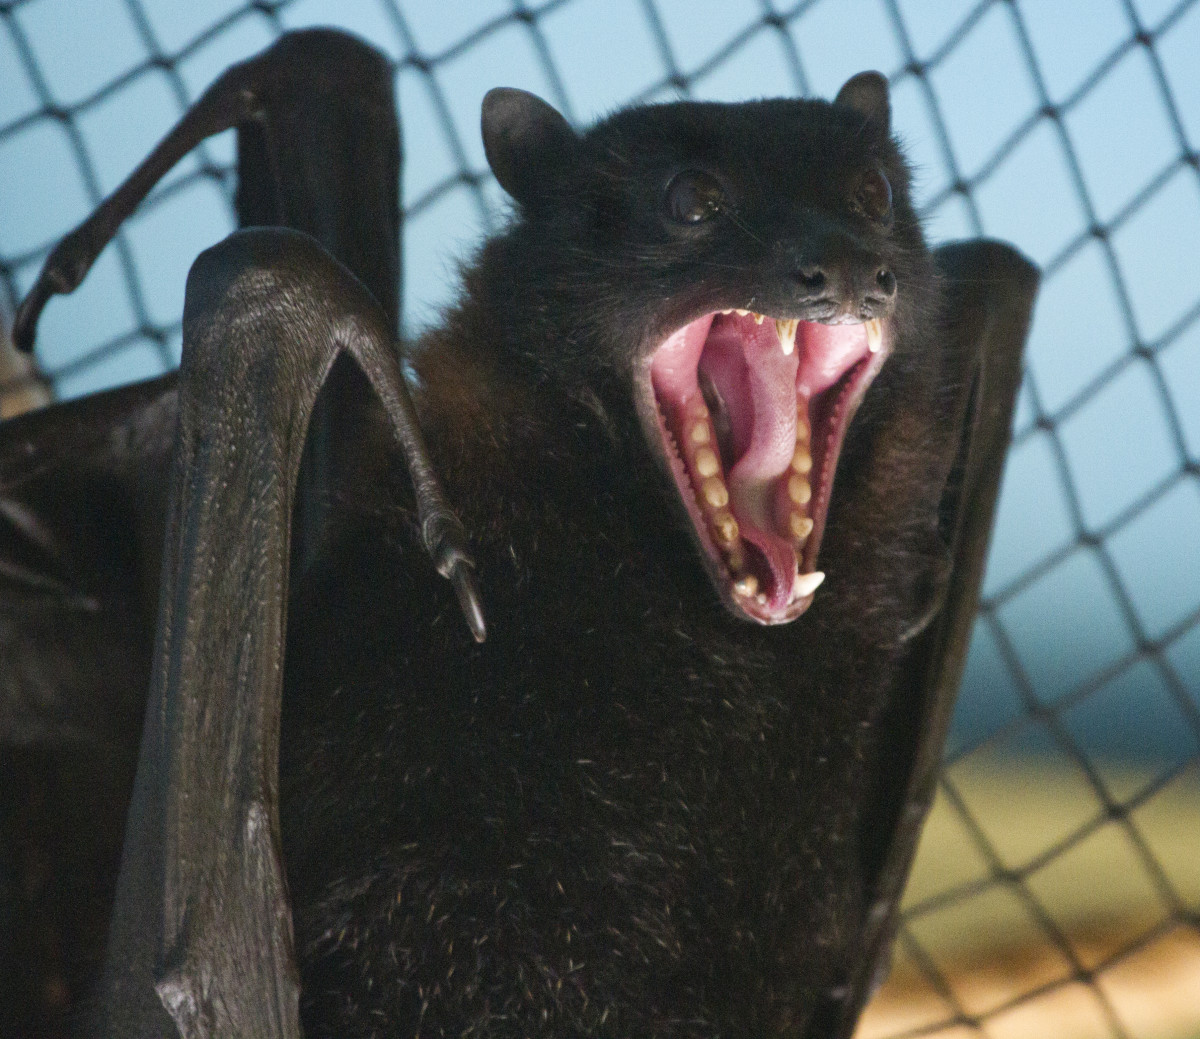 This bat is providing some negative feedback to the person who is cornering him by baring his fangs.  Back off and give the bat some room.